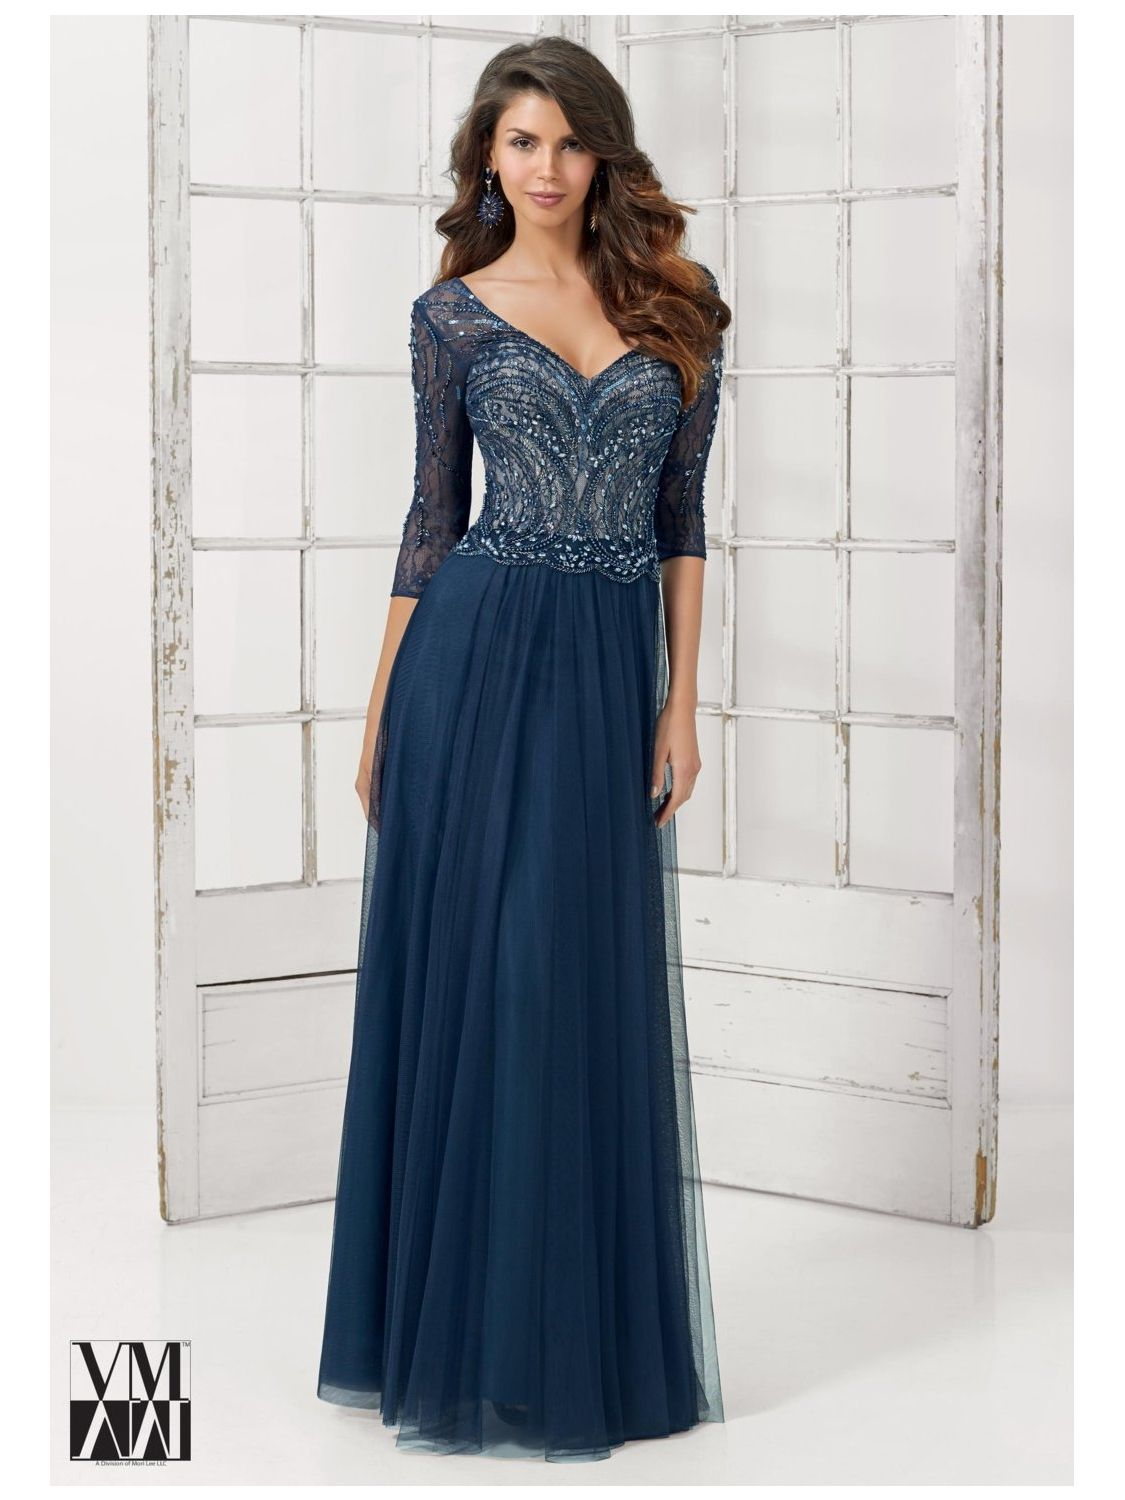 VM Collection 71213 Formal Gown with Stole: French Novelty